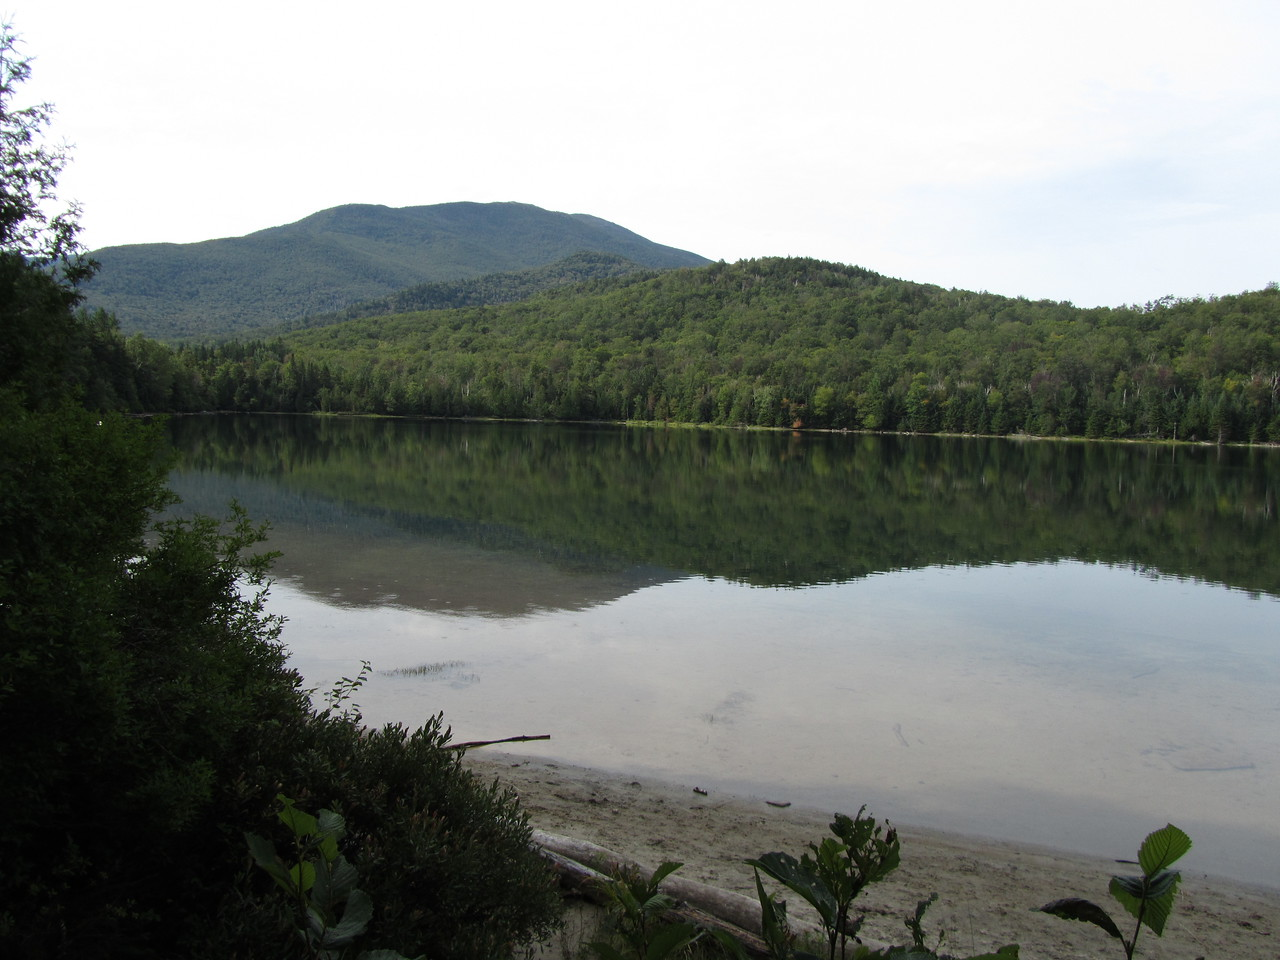 Heart Lake at the Adirondack Loj.